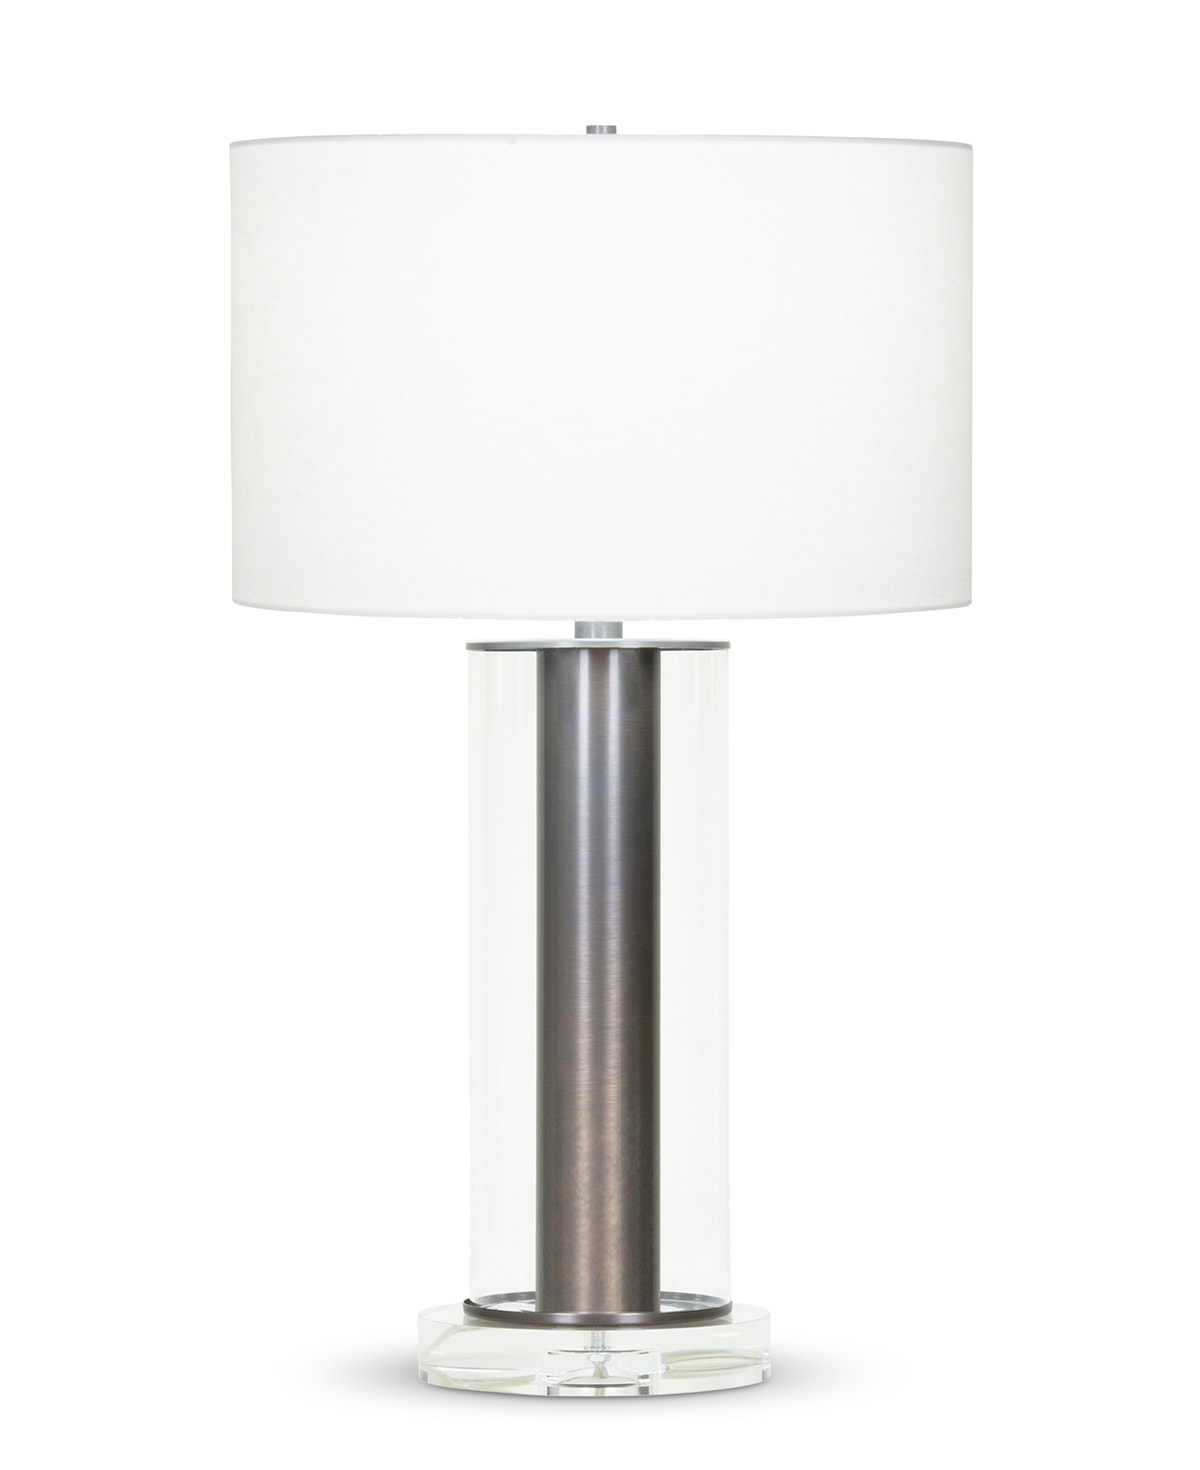 FlowDecor Chateau Table Lamp in metal with bronze finish and glass and crystal and off-white linen drum shade (# 4076)